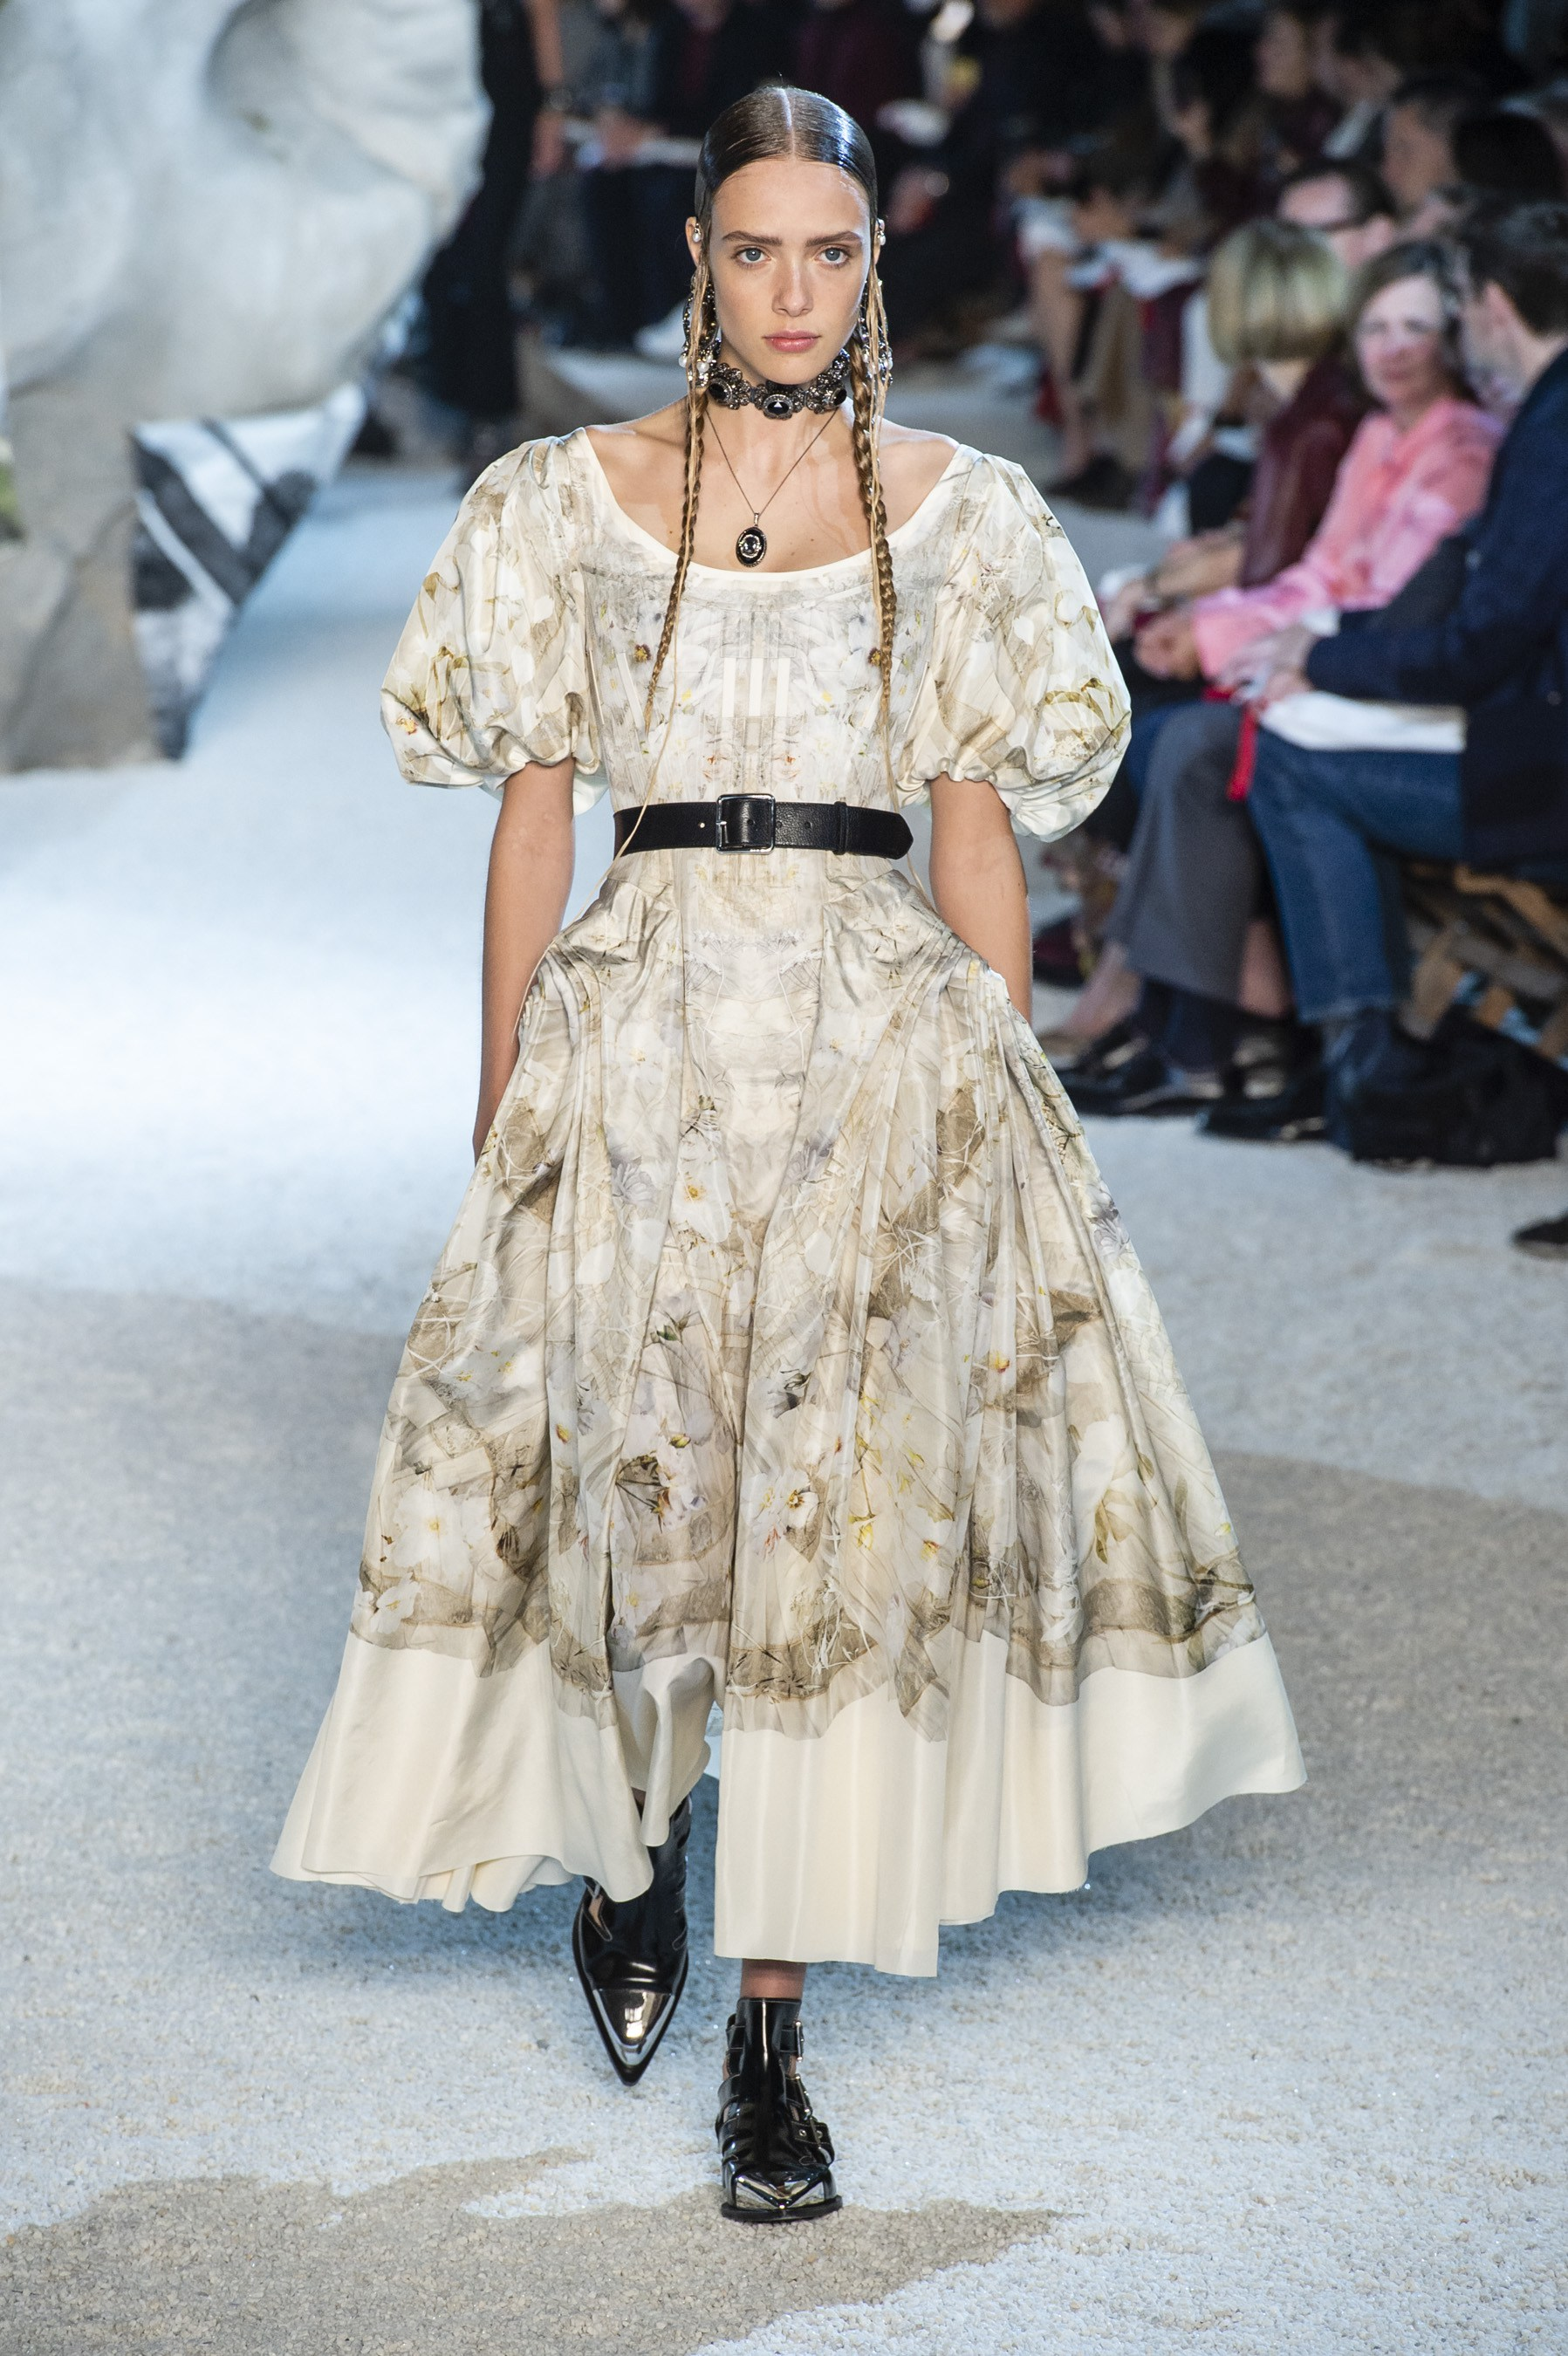 Top 10 Models of New York Fashion Week Spring 2019